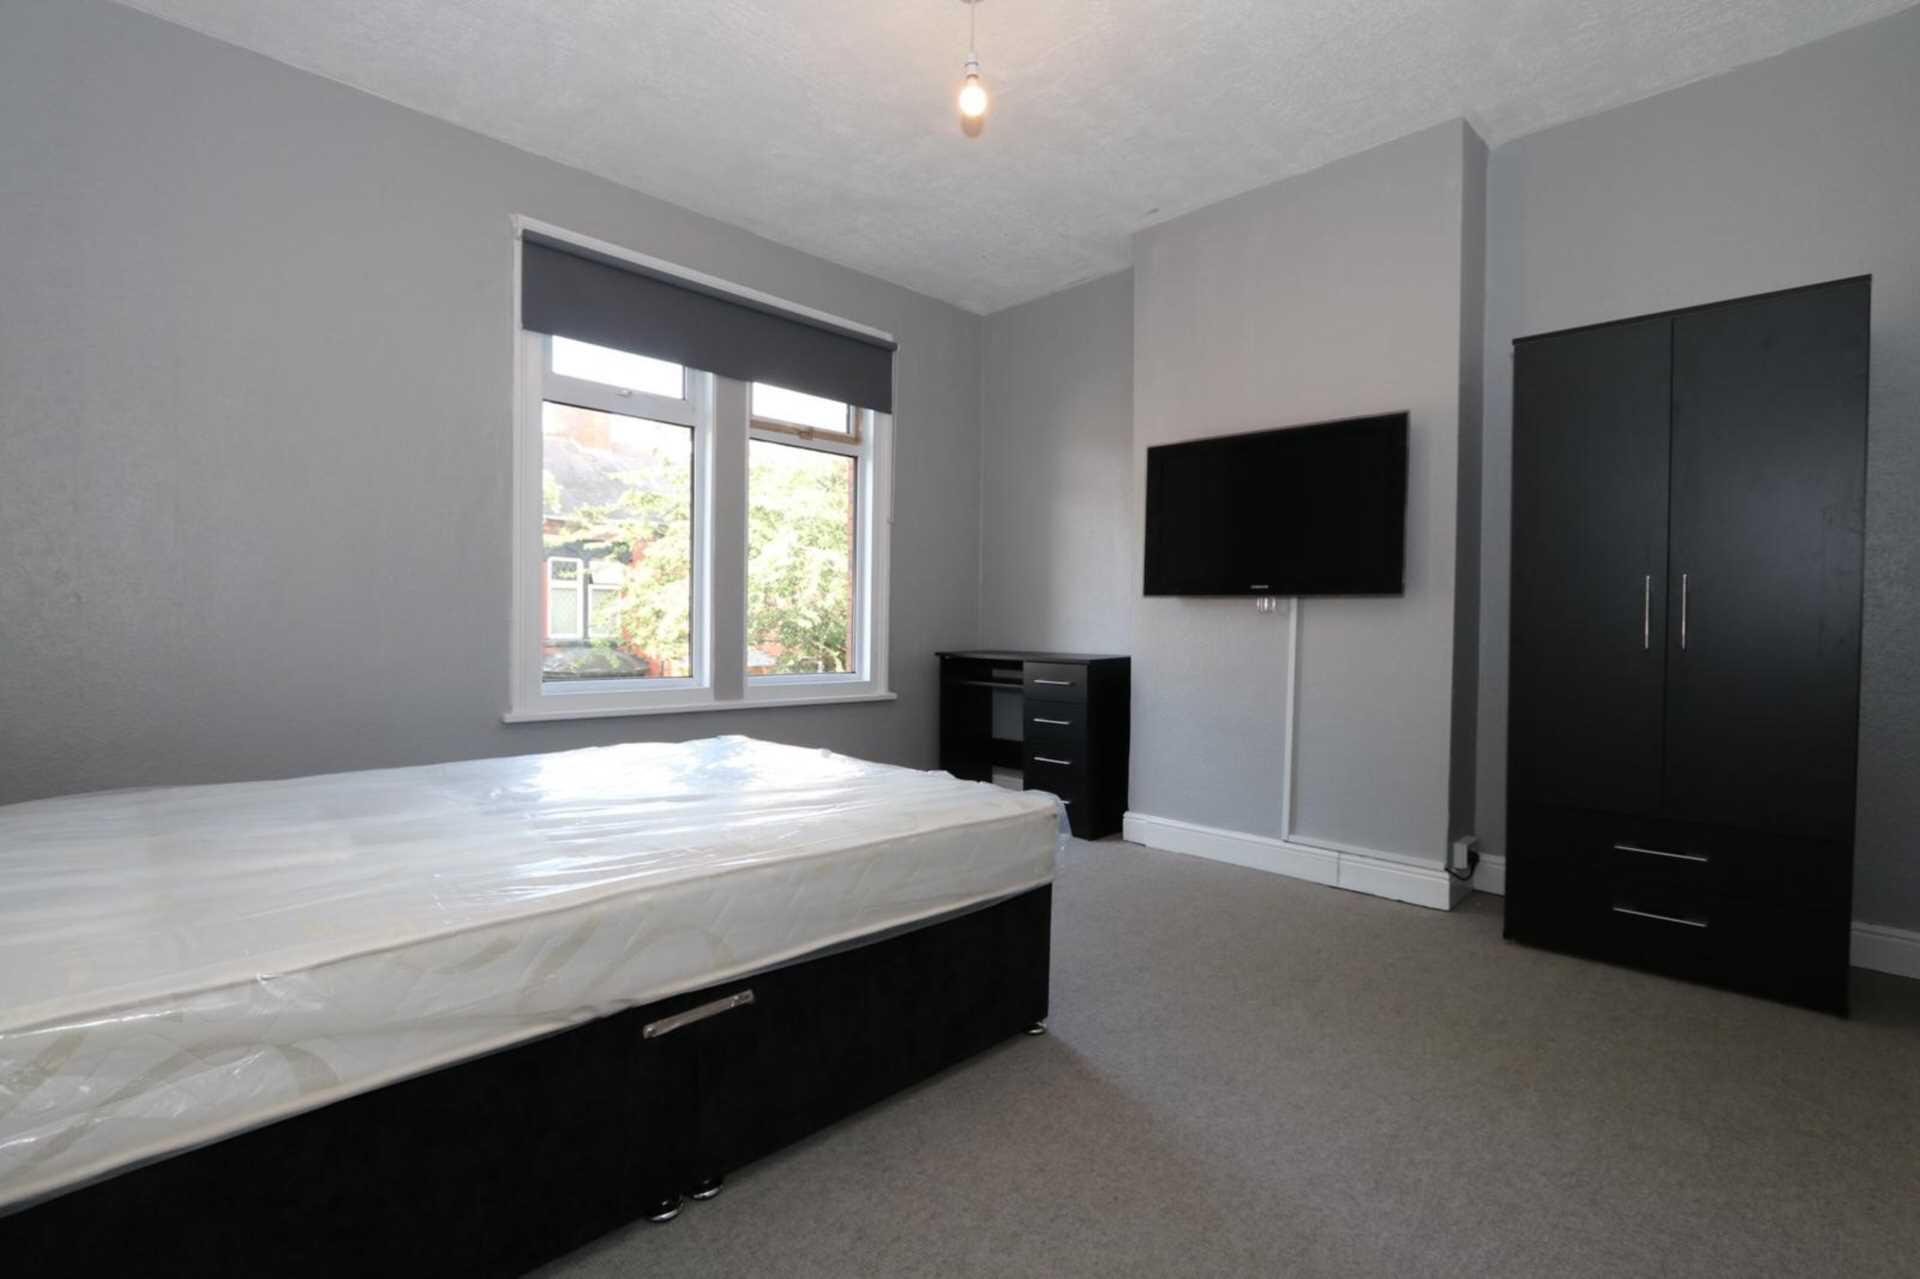 Gaul Street - 3 bedroom student home fully furnished, WIFI & bills included - NO FEES, Image 3